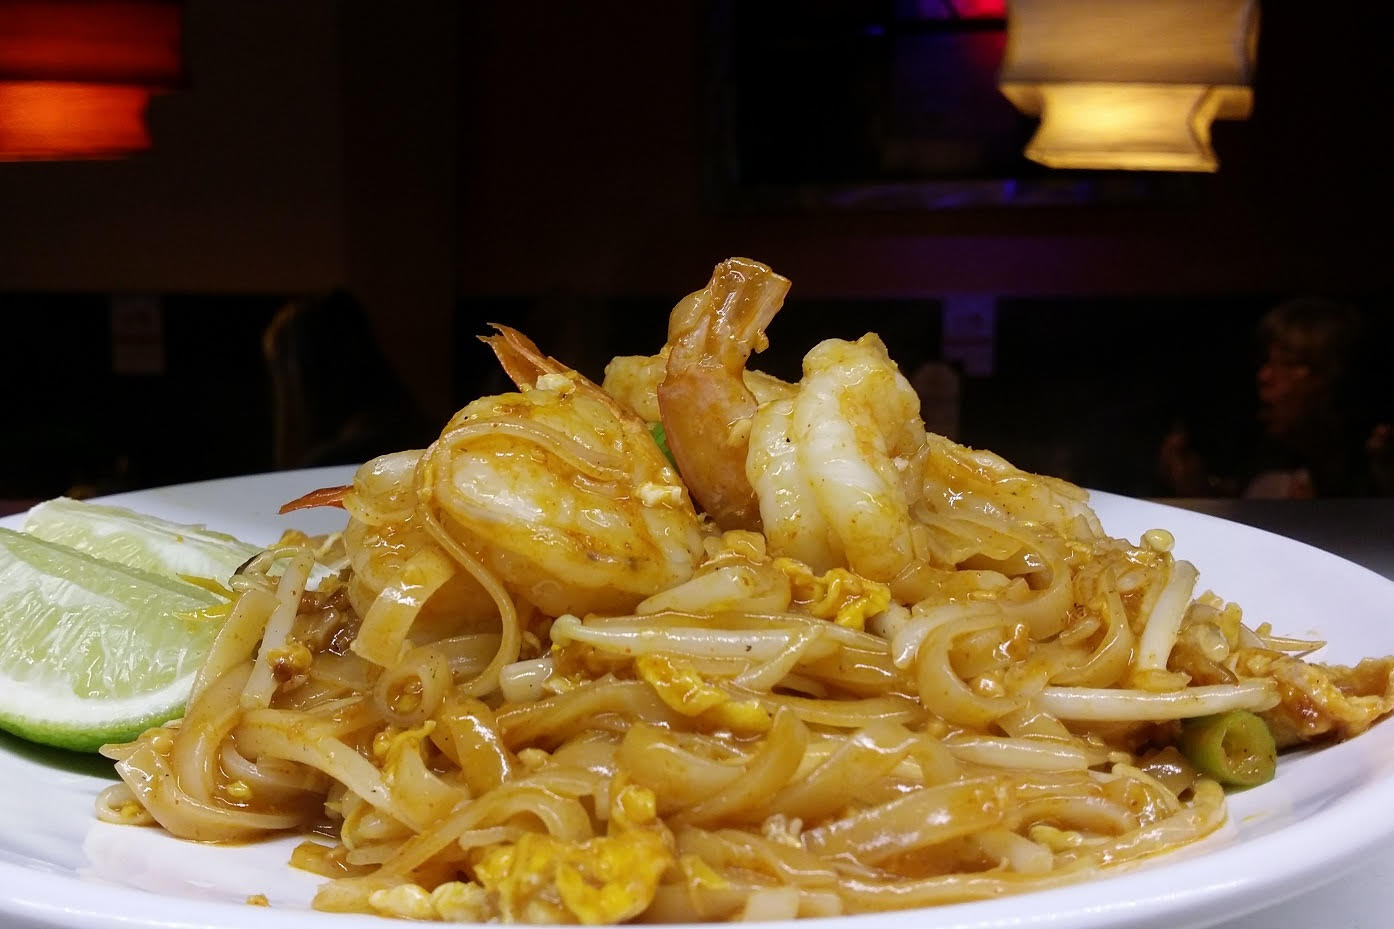 Shrimp pad Thai - Stir-fried Rice Noodles with ground Peanuts, Bean Sprouts, Egg and Scallion.